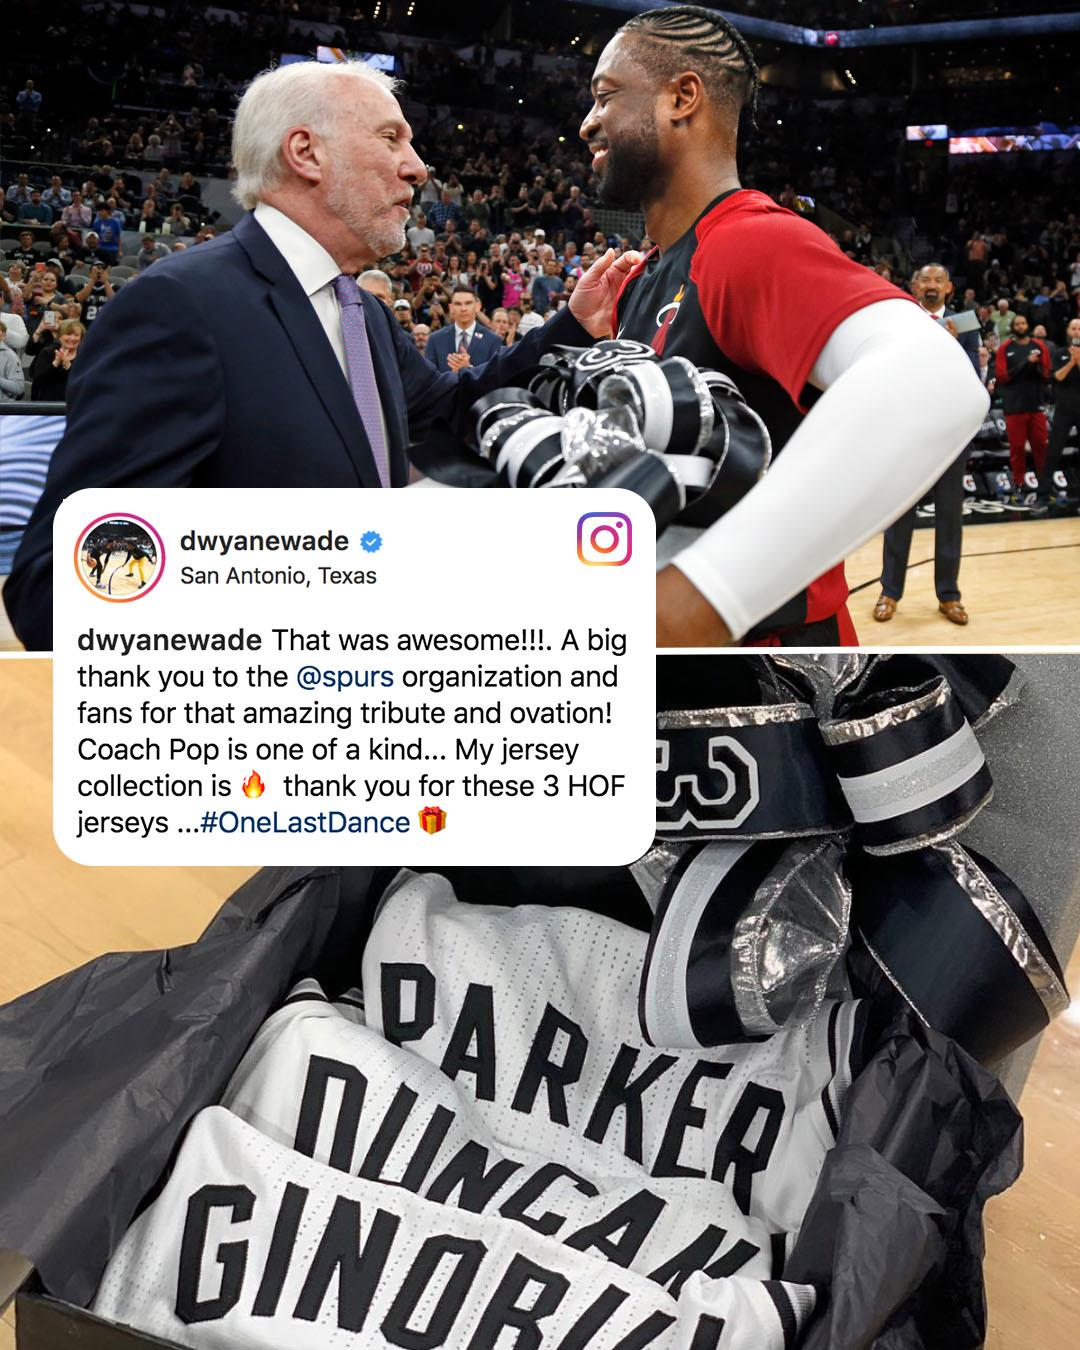 D-Wade's signed jersey collection got a lot more ��, thanks to Coach Pop. #OneLastDance (via @DwyaneWade) https://t.co/Als7ee81p7